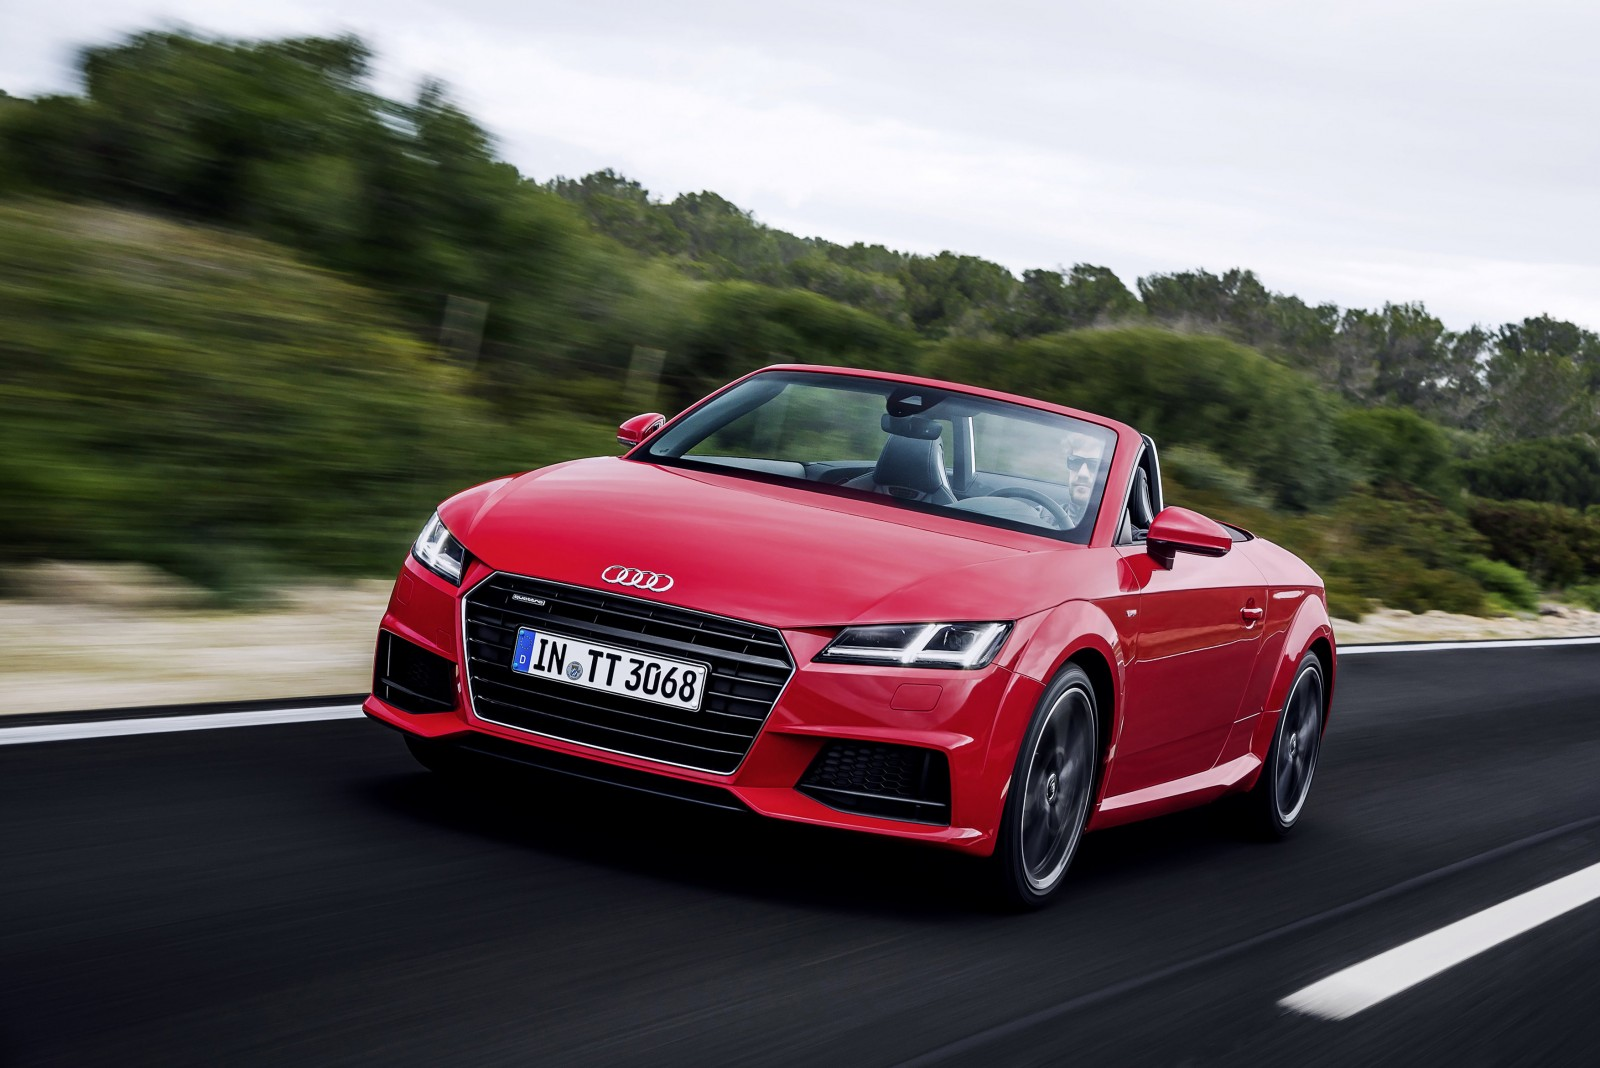 Prepare For Spring With Redesigned 2016 Audi Tt Openroad Auto Group